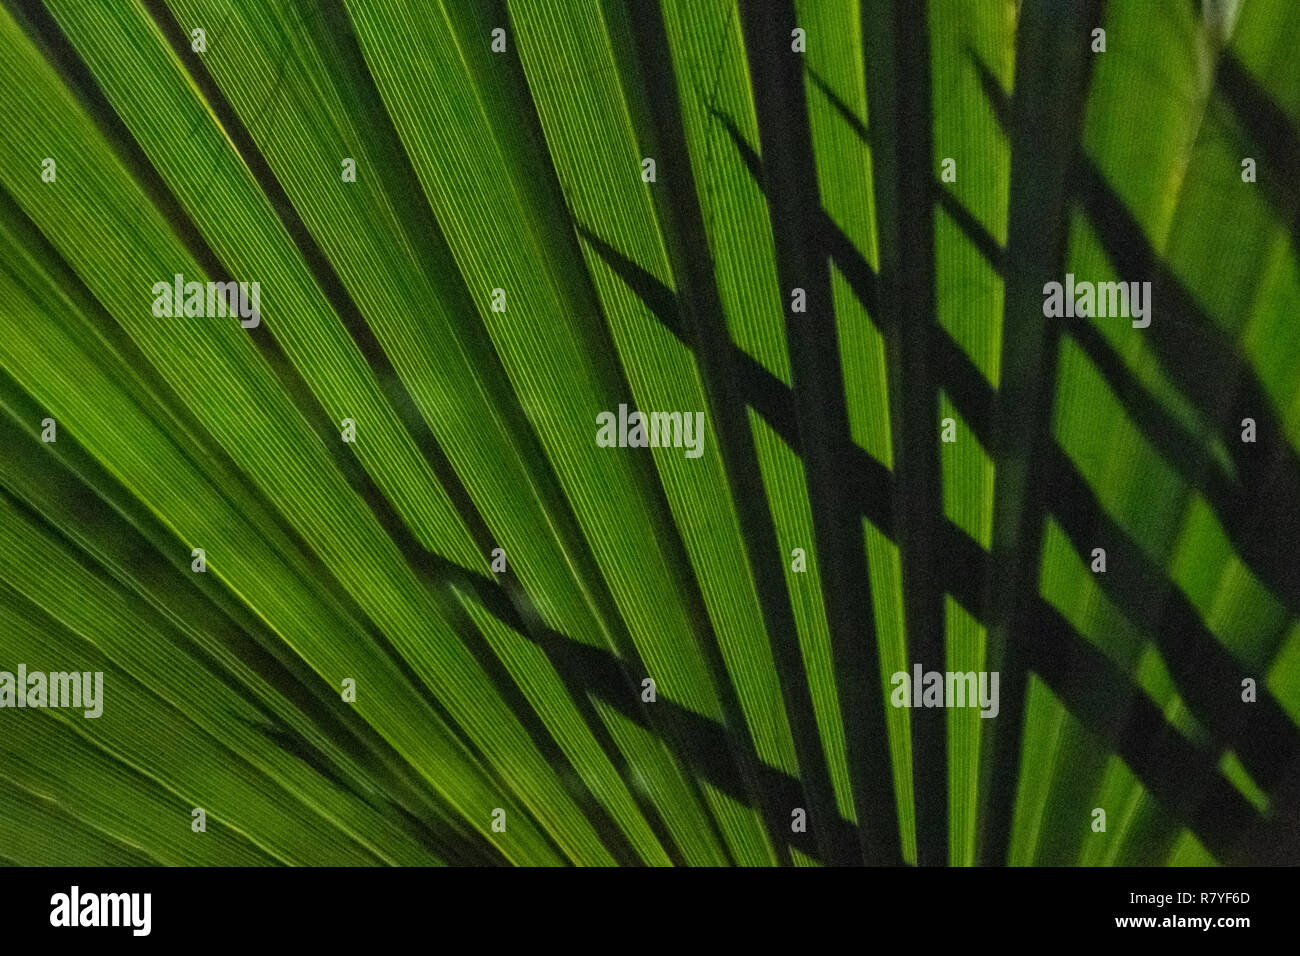 Palm fan close up with shadow of fronds - native plant to Aruba - dark green palm leaf at night with pointy sharp palm leaves silhouetted behind - Stock Image